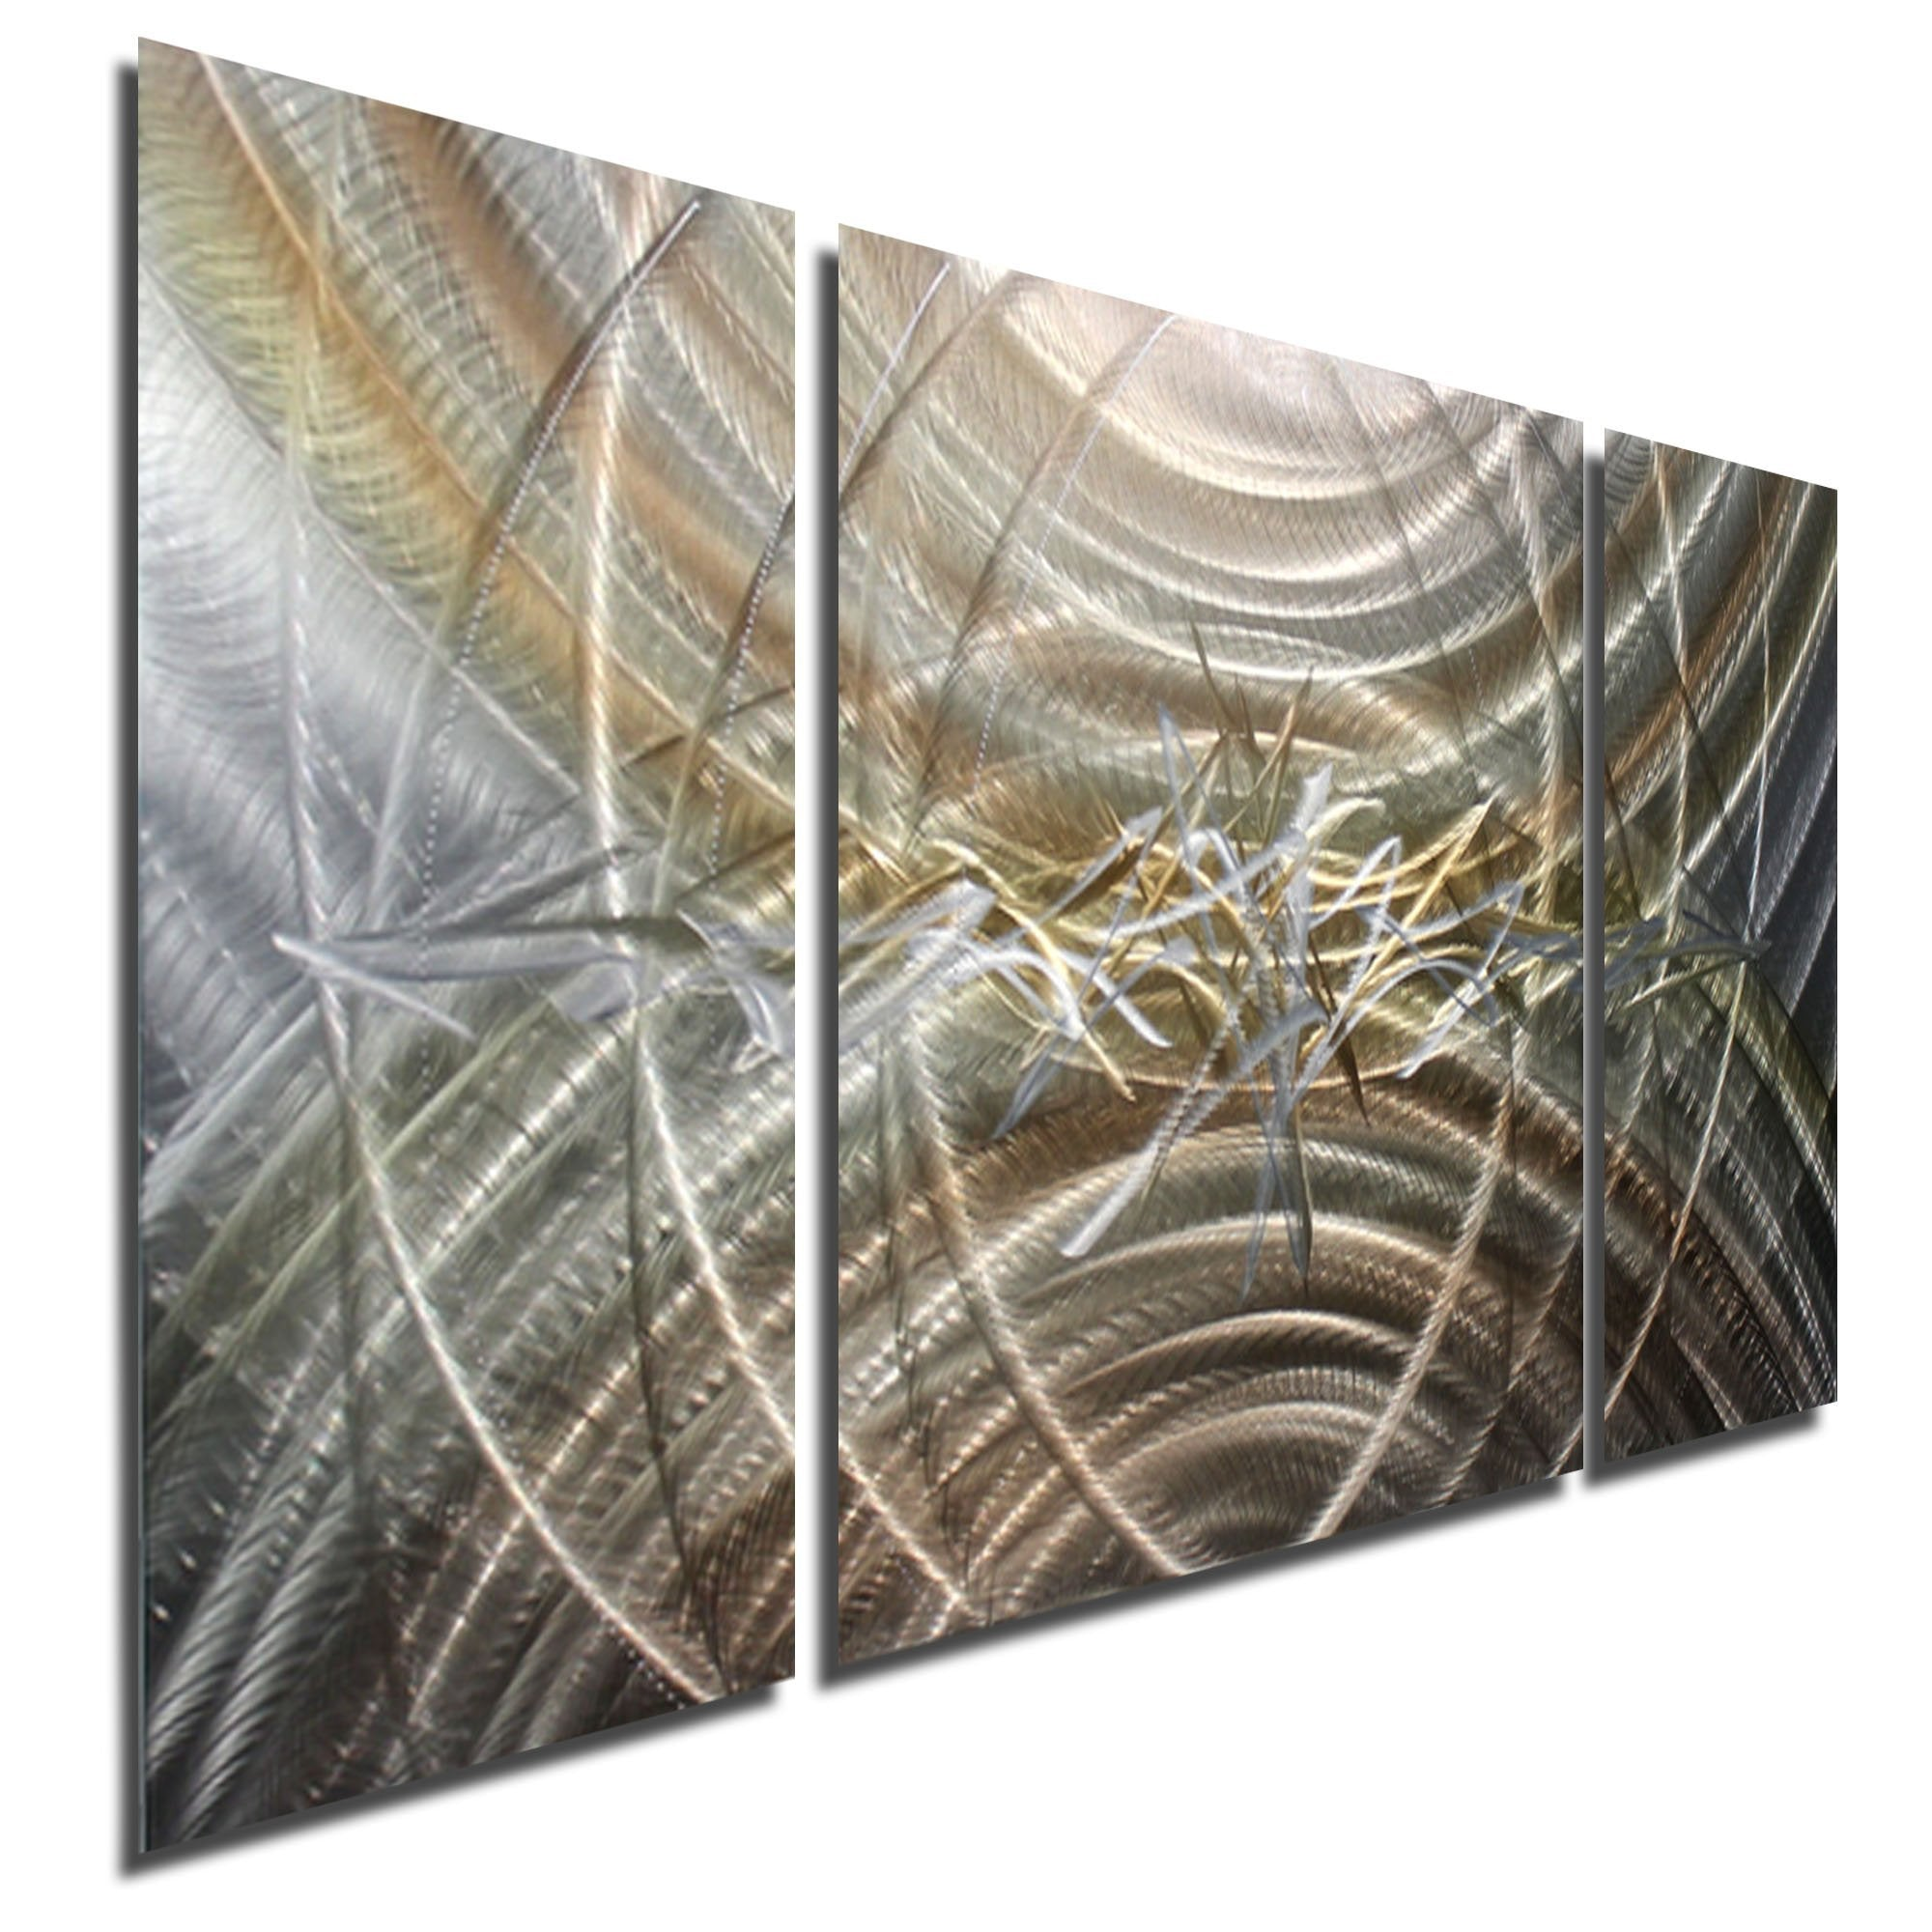 Statements2000 Abstract Metal Wall Art Gold Silver Panel Jon Allen Resuscitate 3